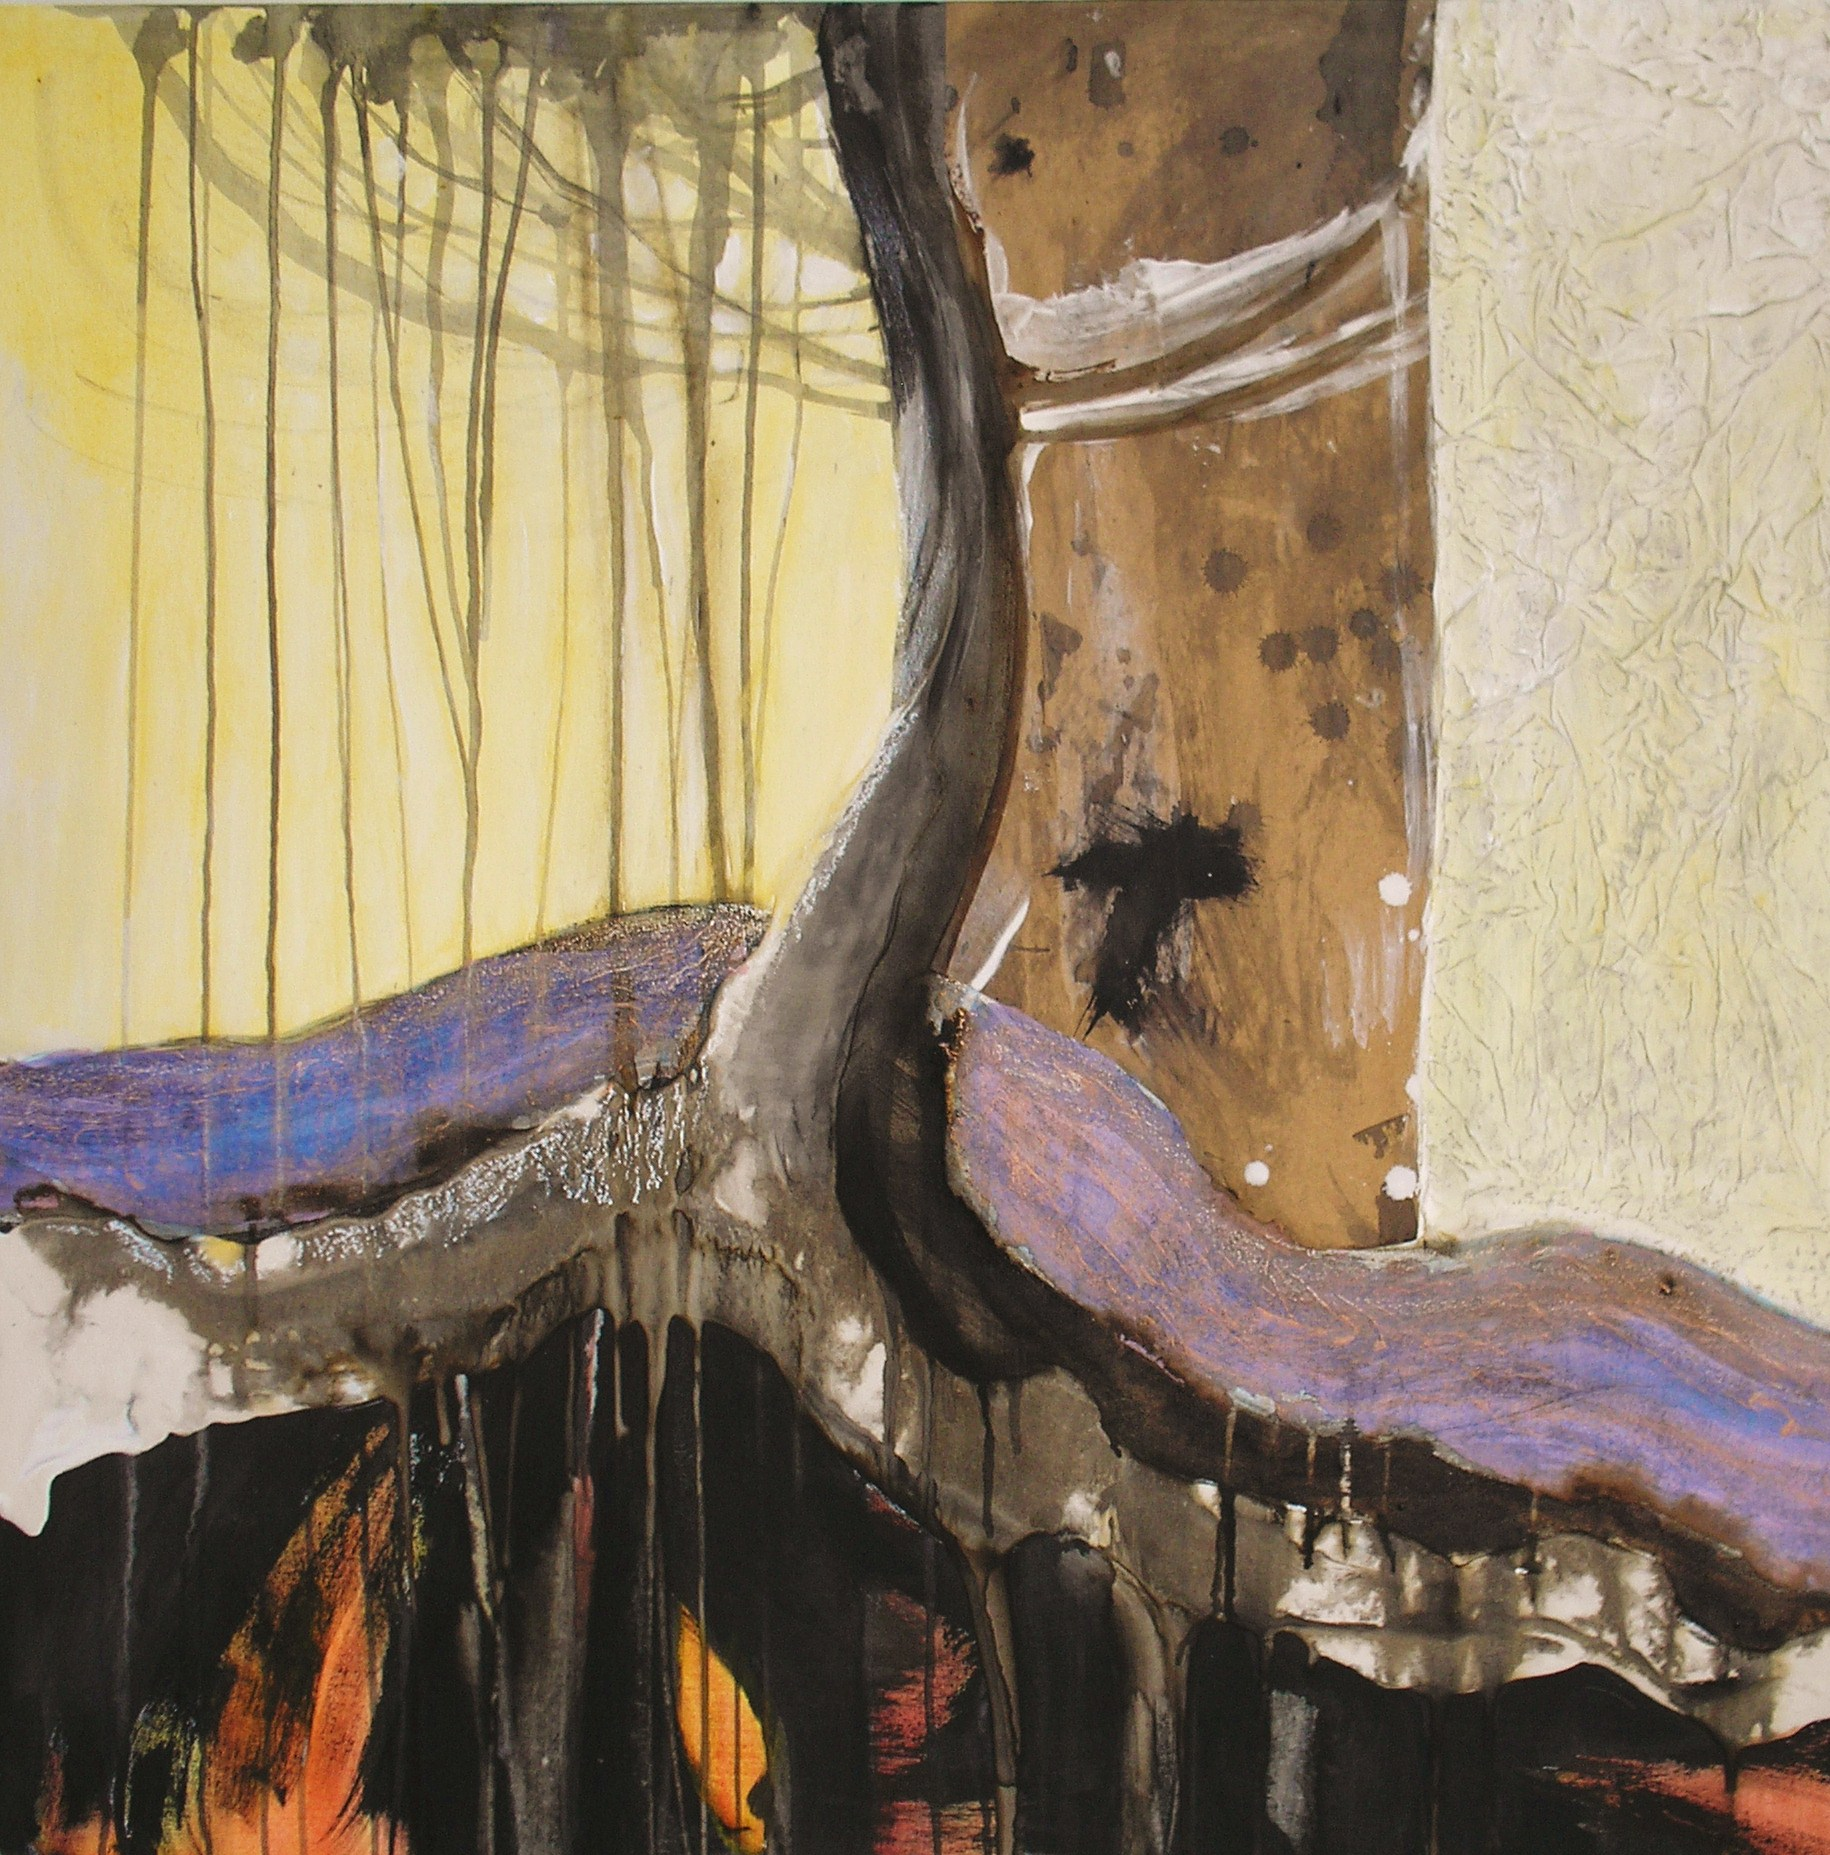 Song of the Earth by Gail de Cordova at the Saffron Walden Gallery